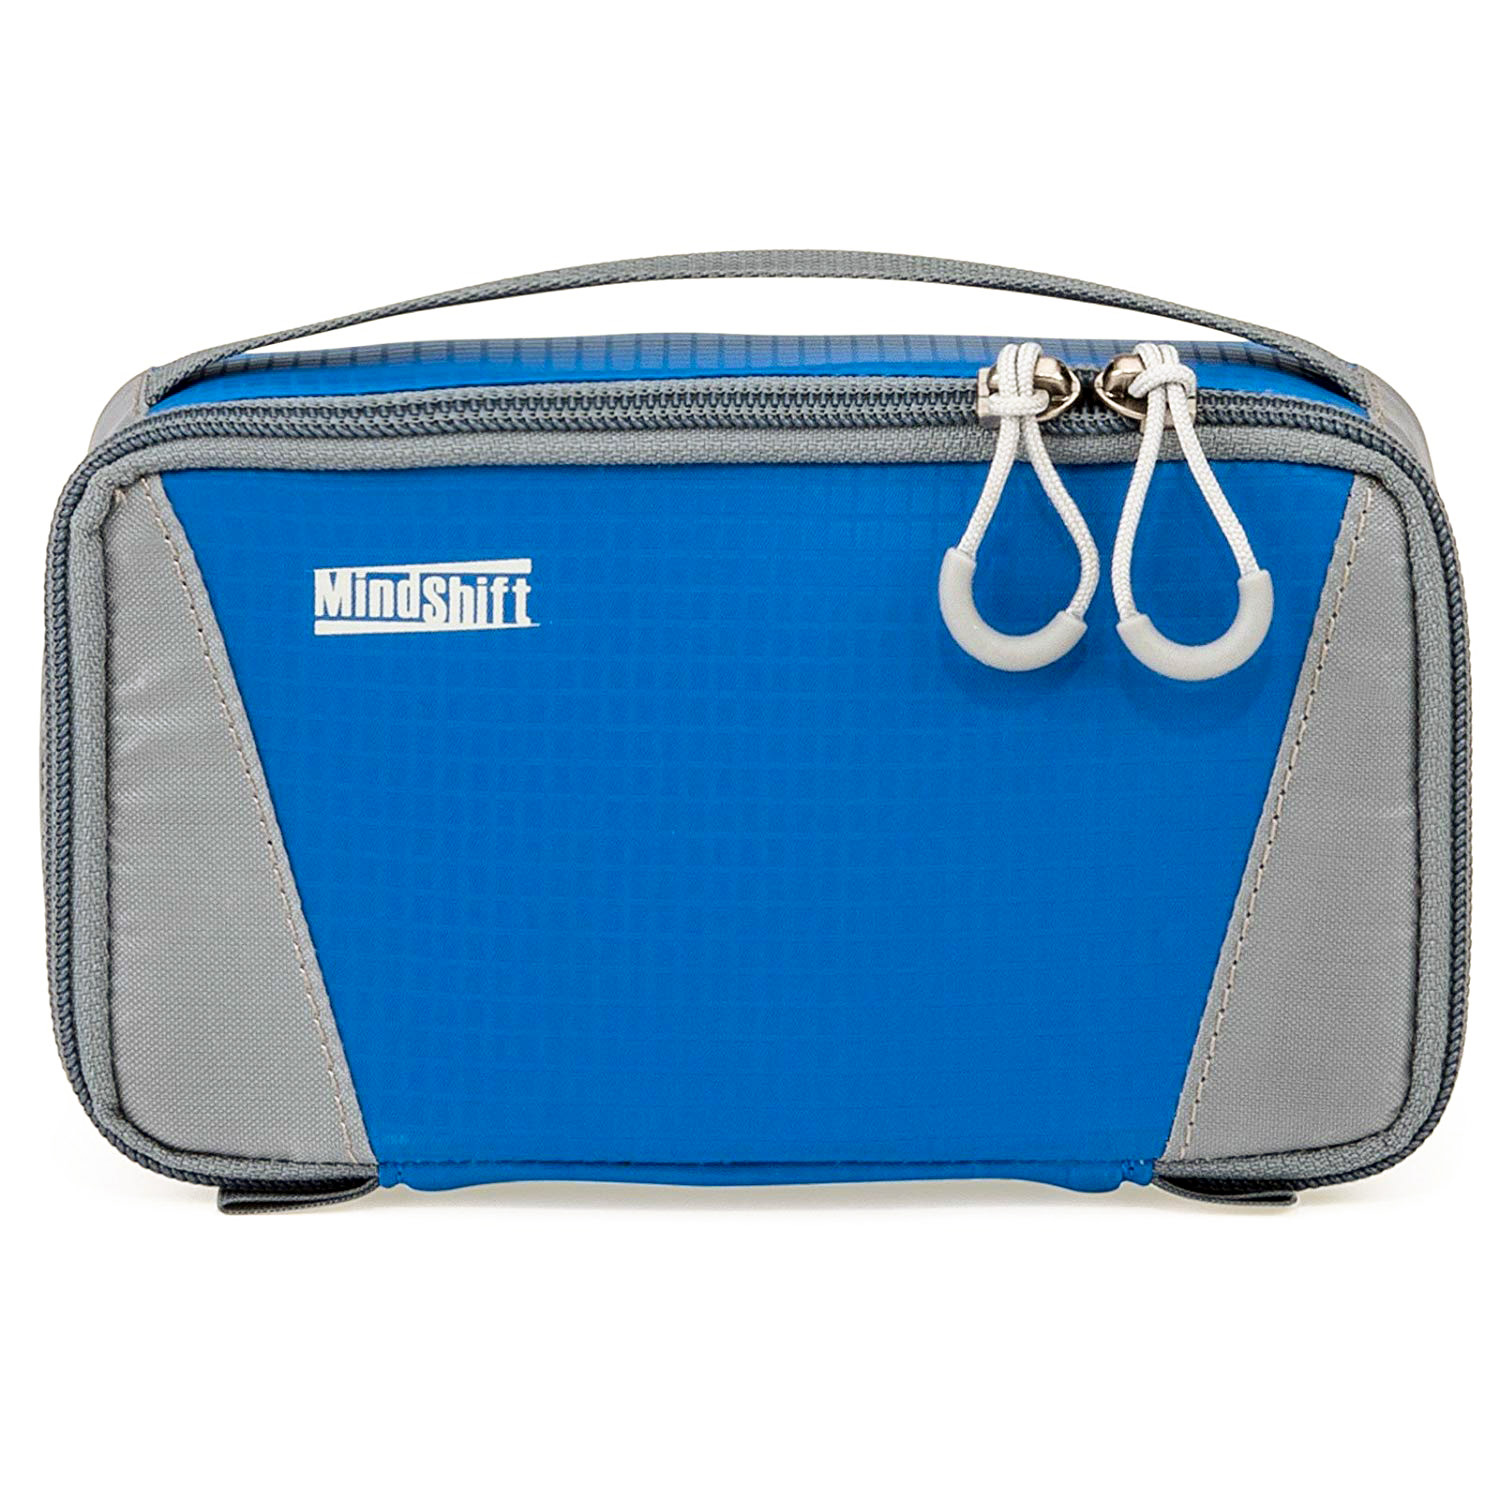 ThinkTank MindShift Gear Pouch 2 Kit